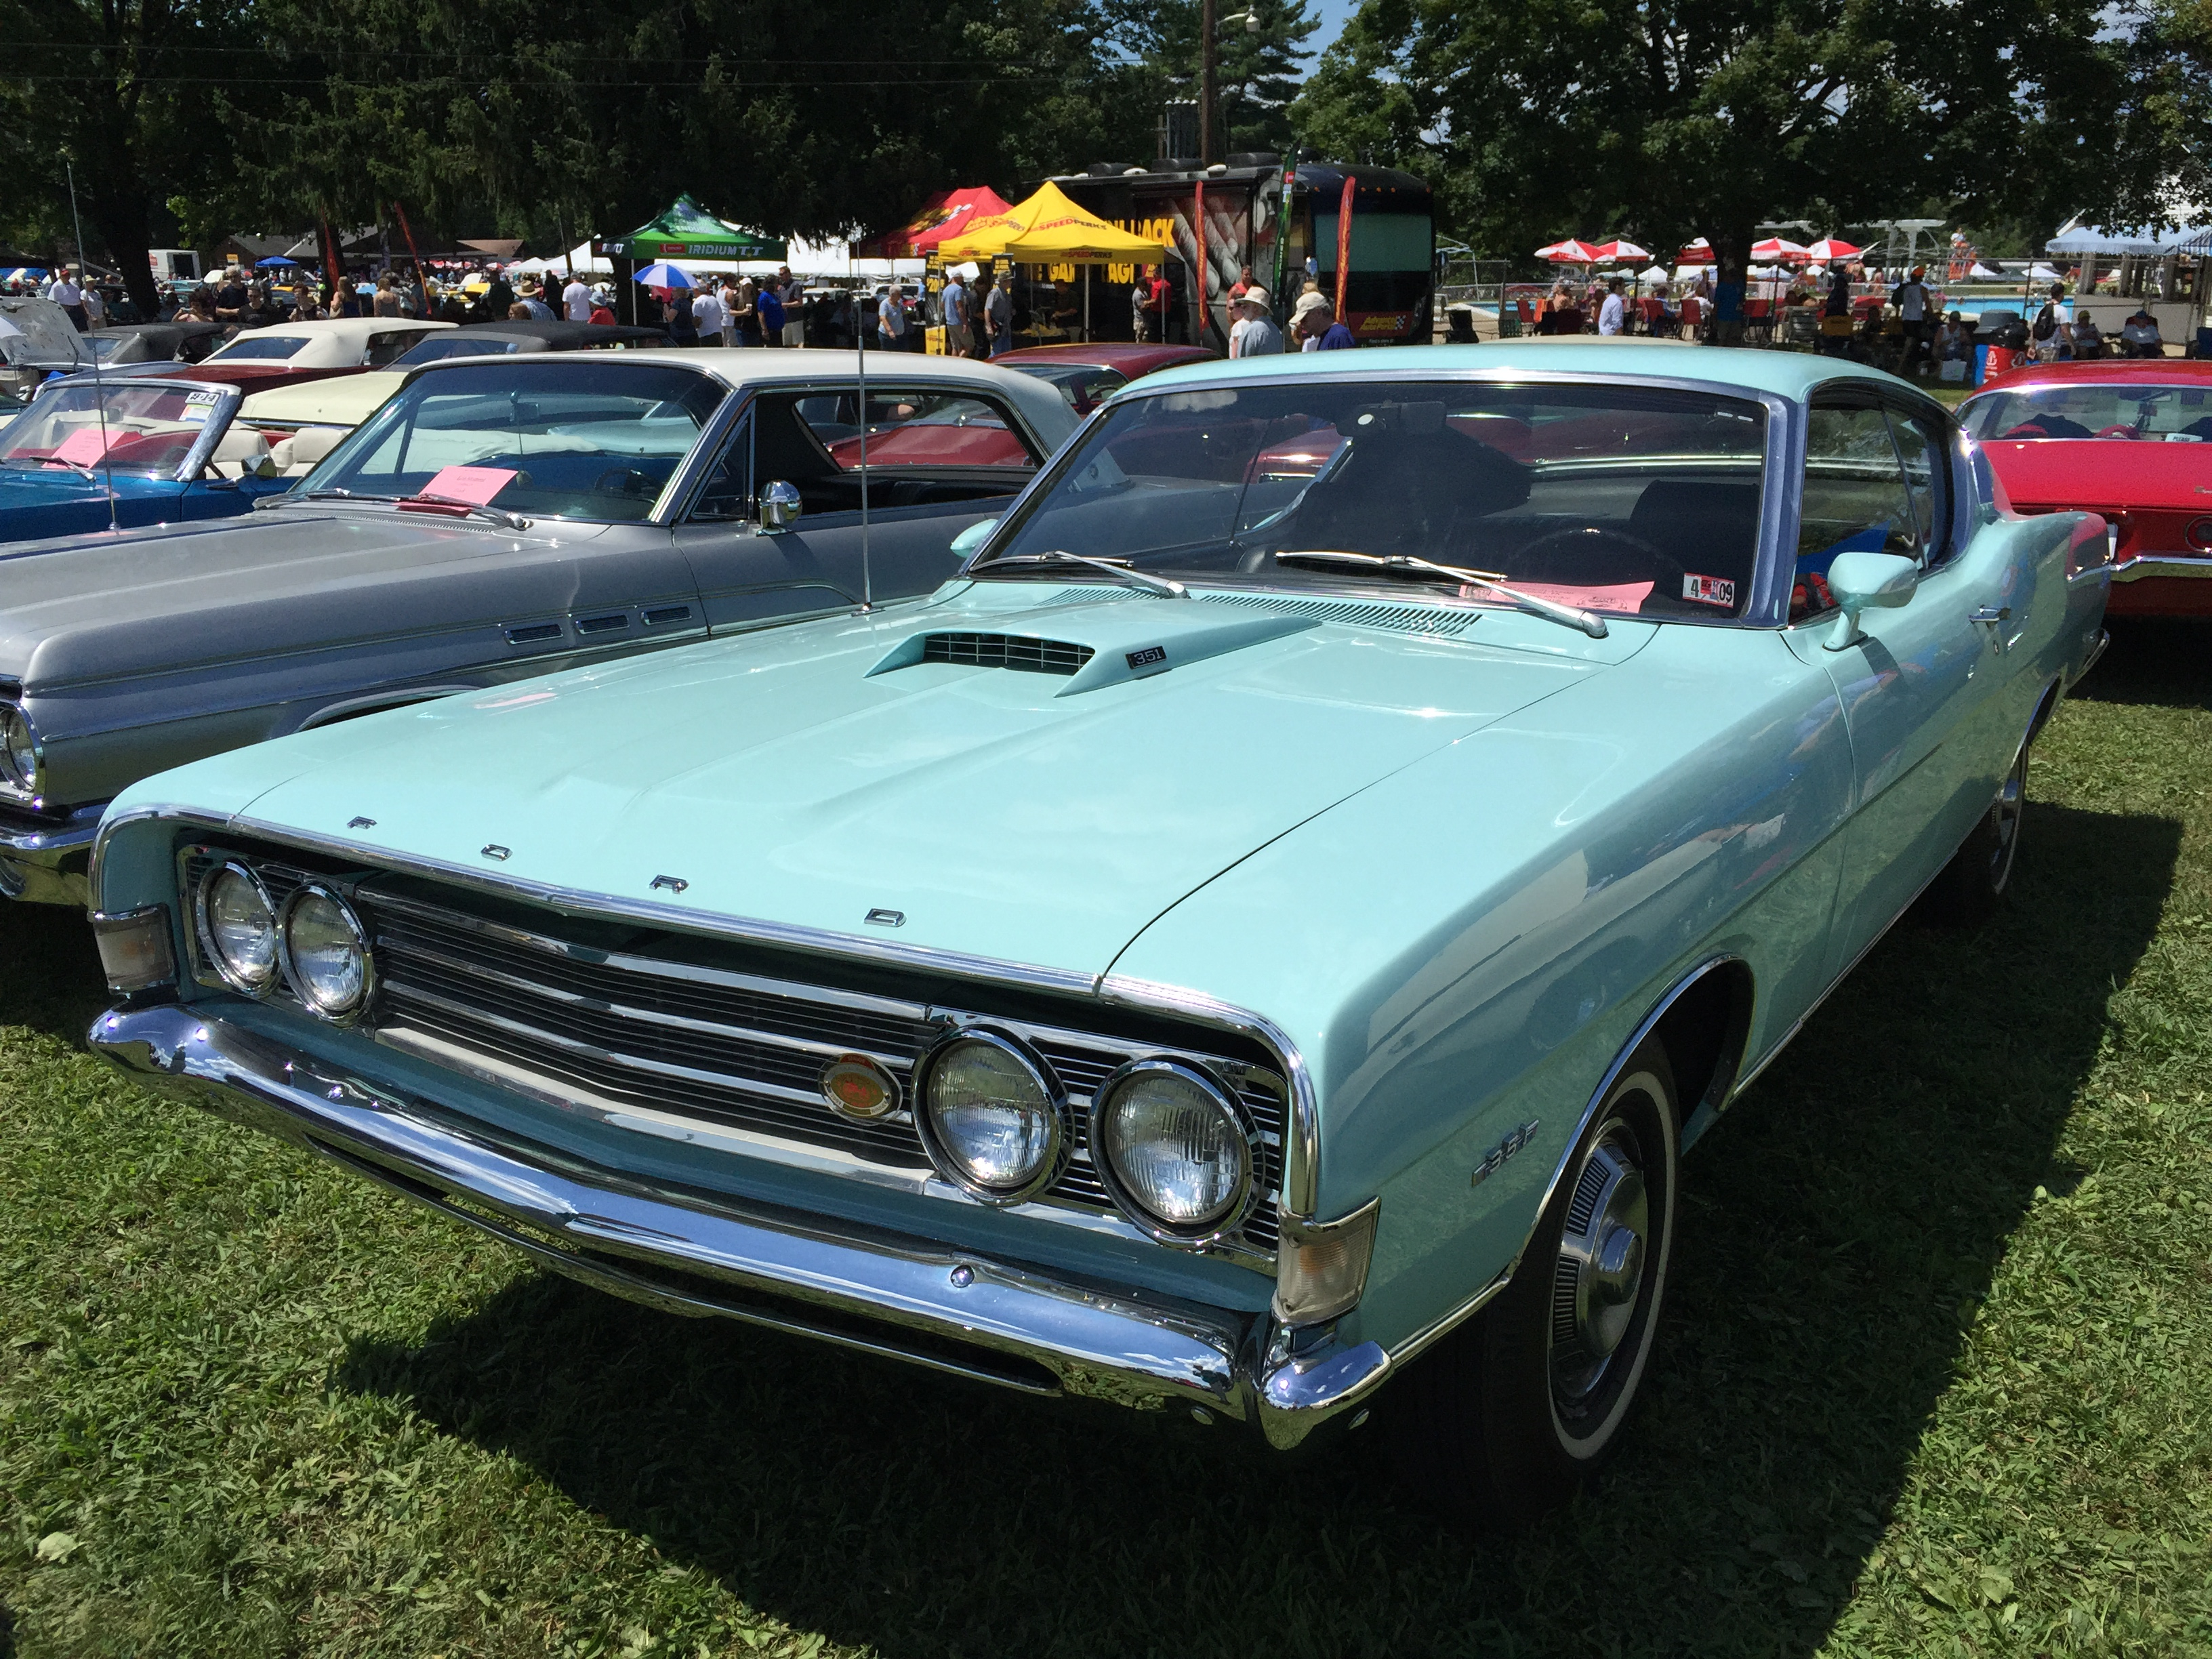 File1969 Ford Fairlane 500 Sportsroof Fastback At 2015 Macungie 1969 Muscle Cars Show 1of2